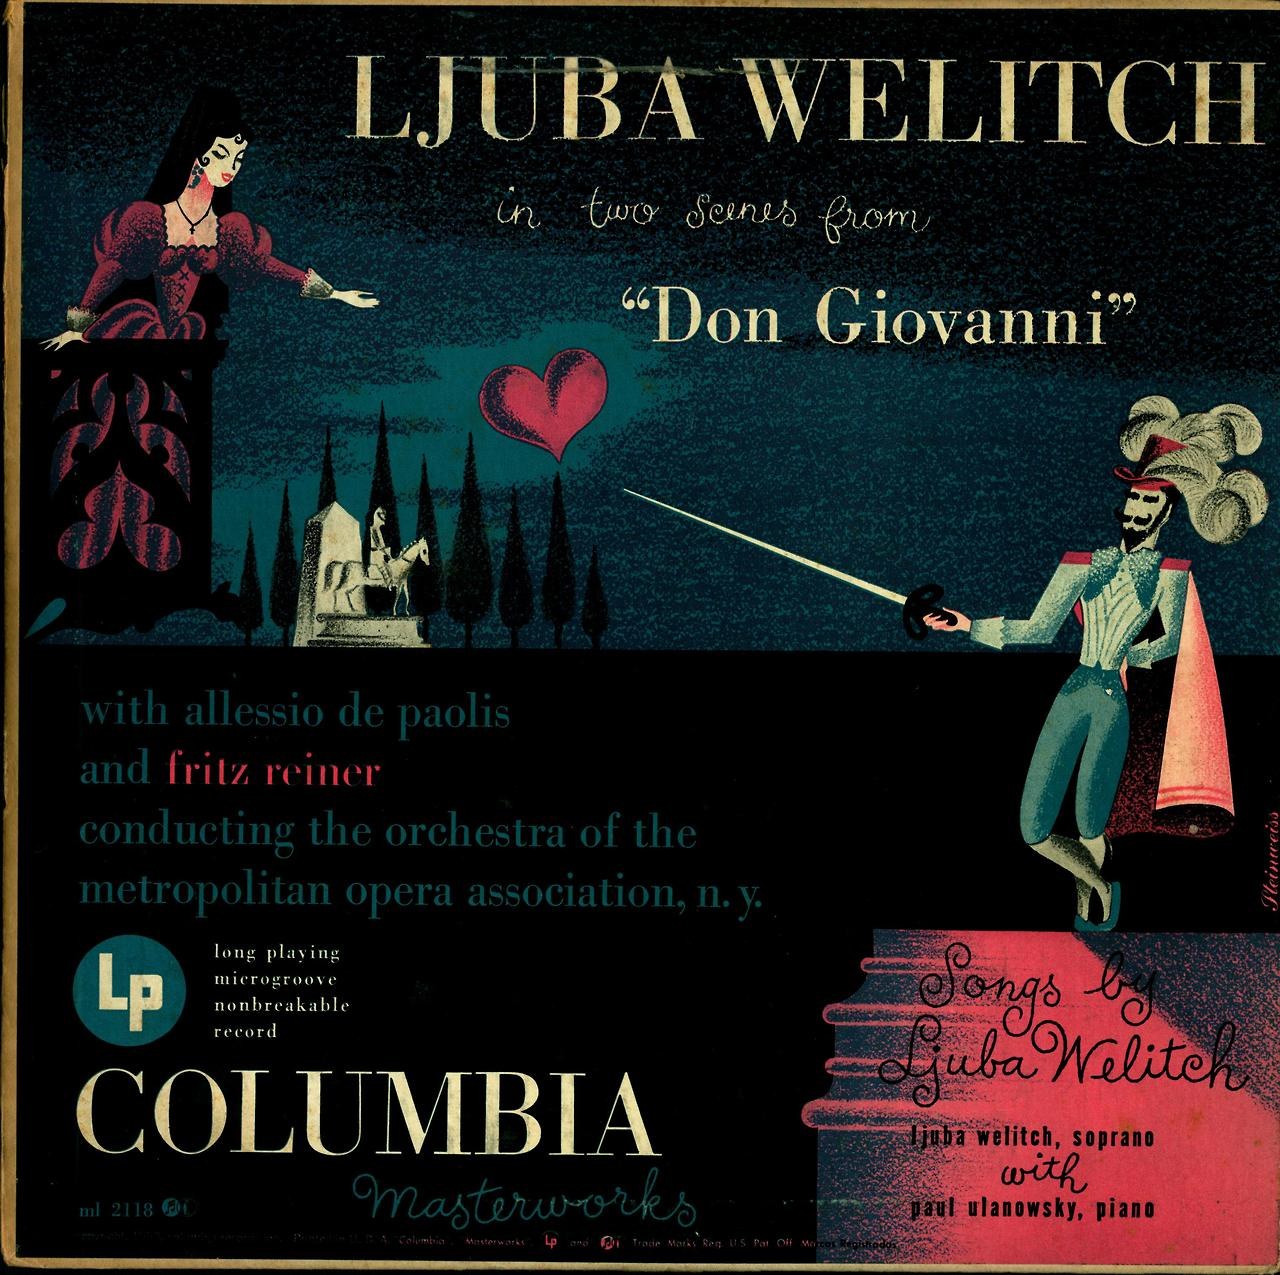 "Mozart- Two Scenes from ""Don Giovanni"" Ljuba Welitch, soprano; Paul Ulanowsky, piano Orchestra of the Metropolitan Opera Allessio de Paolis and Fritz Reiner, conductors.   Columbia Masterworks ML 2118 (1950)  Cover Art by Alex Steinweiss"